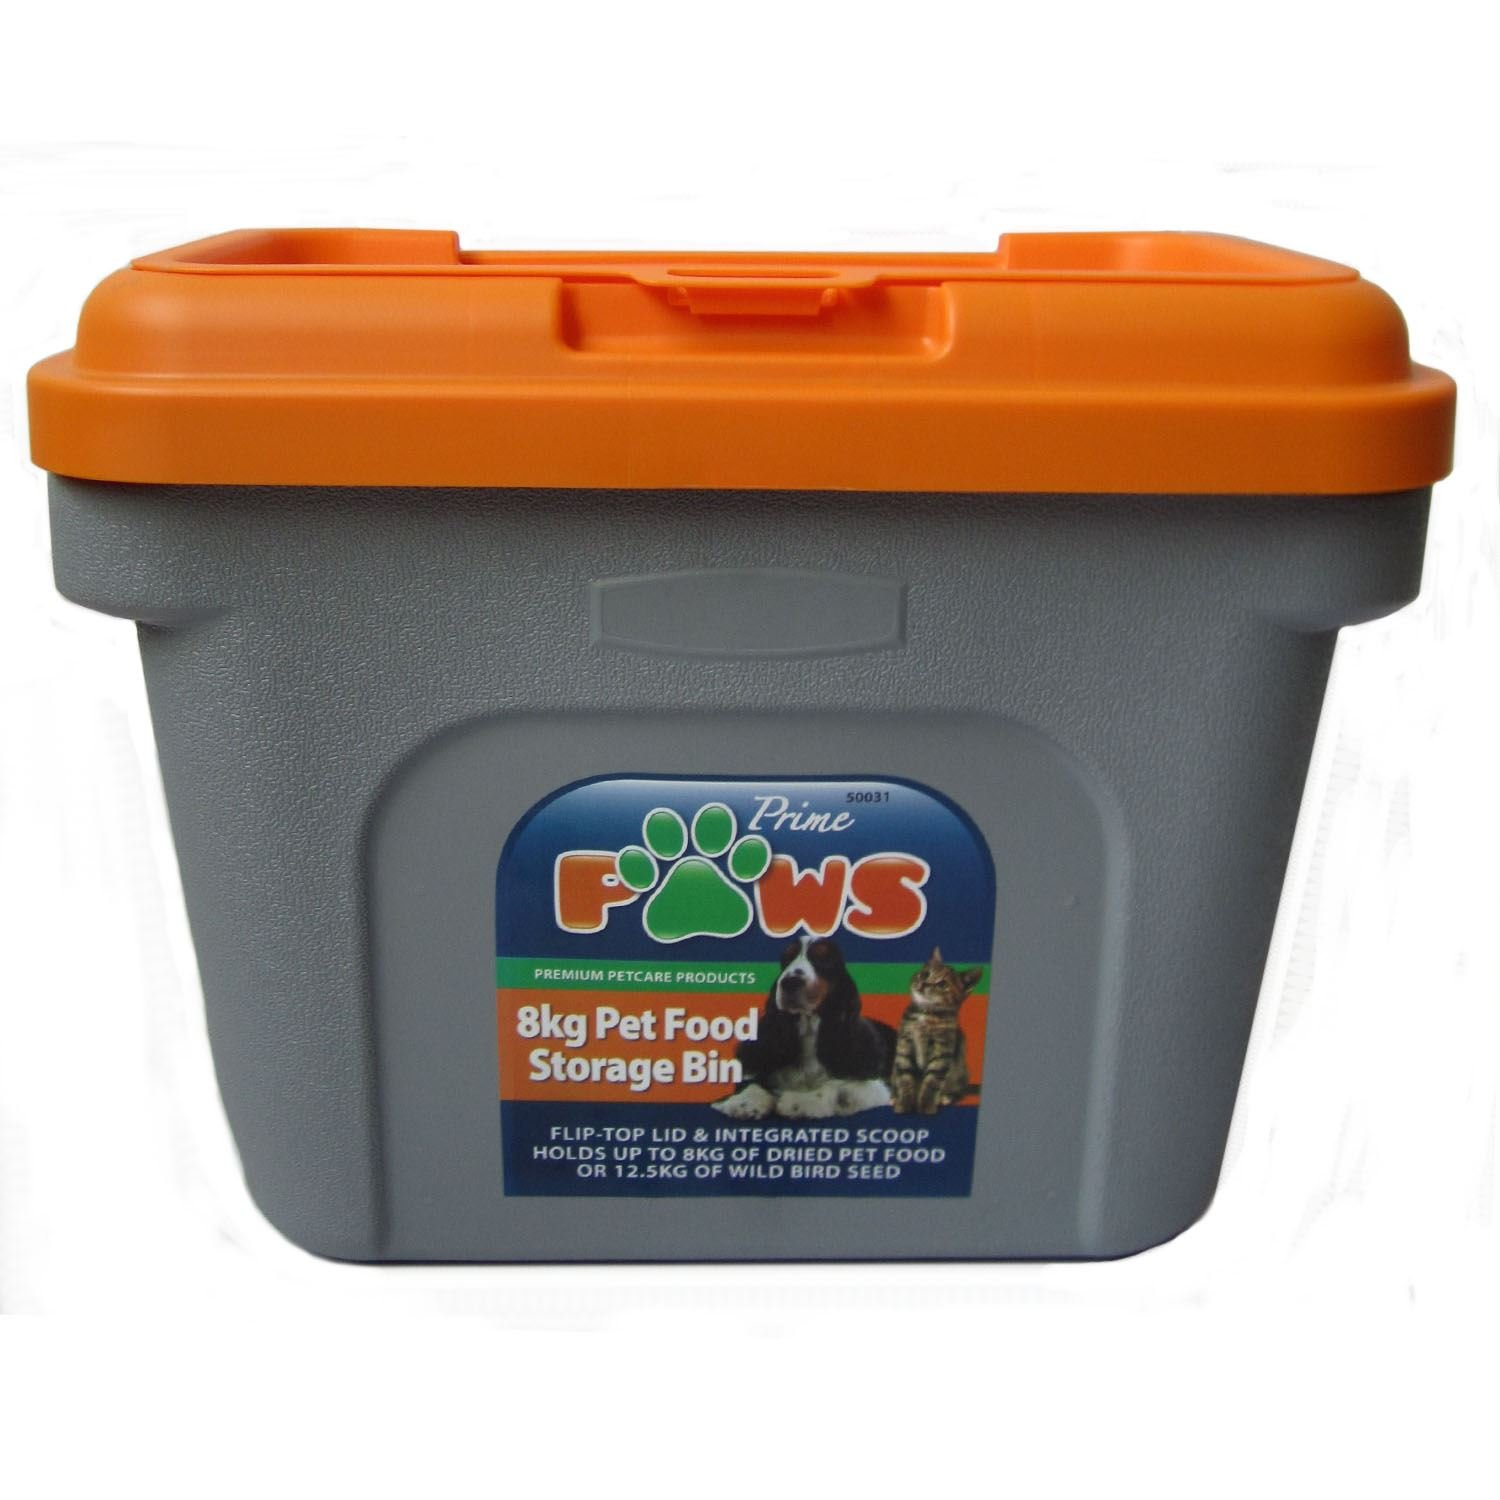 Prime Paws Pet Food Storage Container GreyOrange Holds 125kg